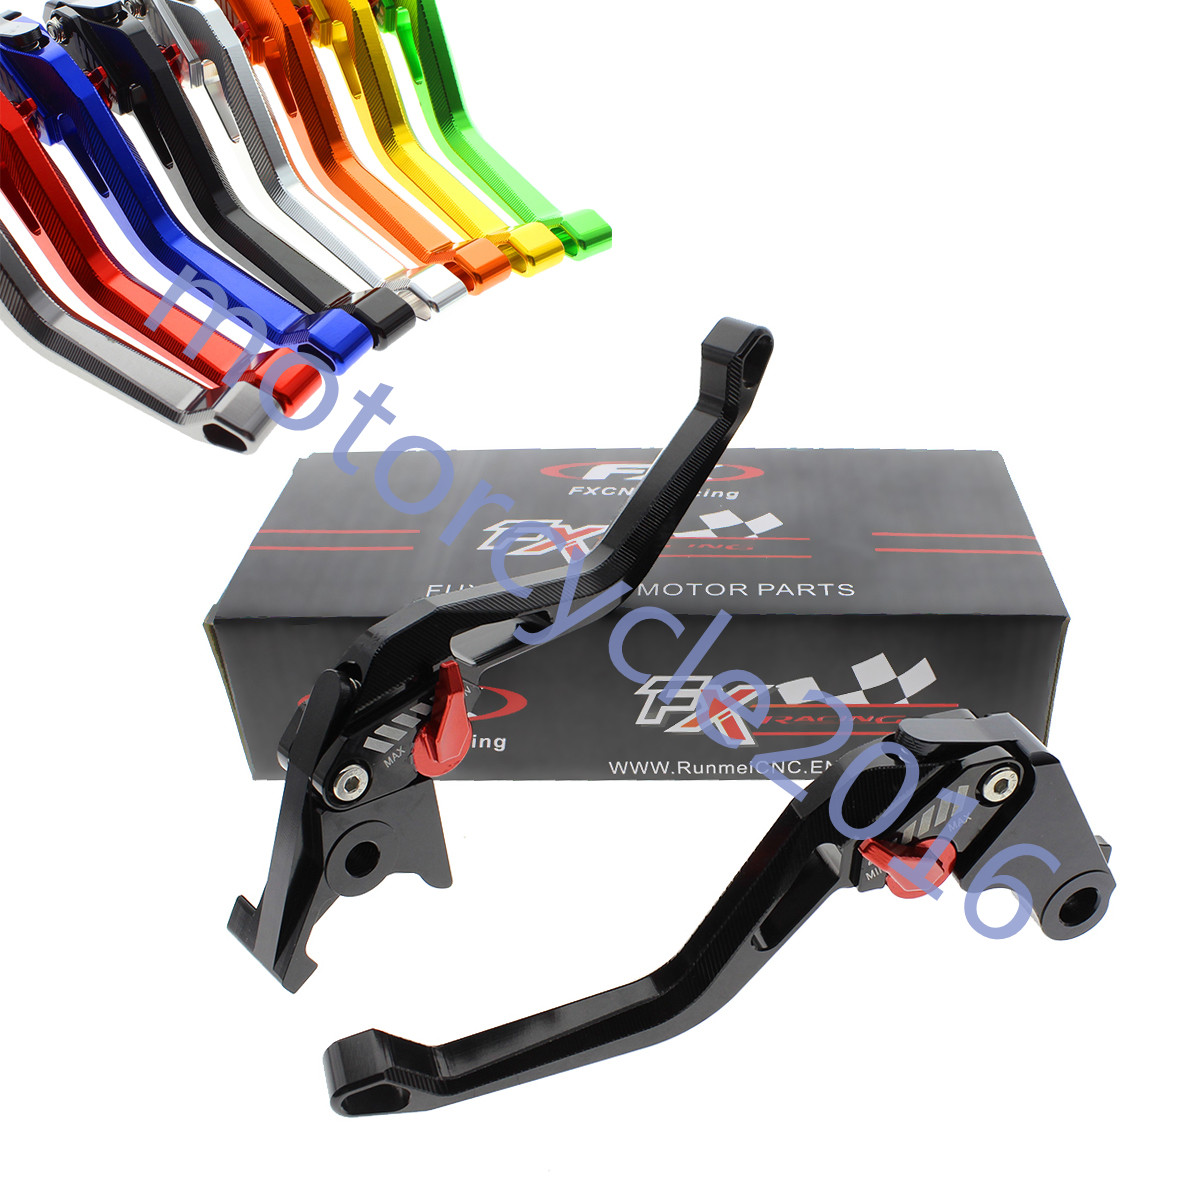 FXCNC CNC 3D New Rhombus Hollow Adjustable Brake Clutch Levers 8 Colors A Pair For BMW R1200RT 2014-2017 R NINE T 2014-2016 billet alu folding adjustable brake clutch levers for motoguzzi griso 850 breva 1100 norge 1200 06 2013 07 08 1200 sport stelvio